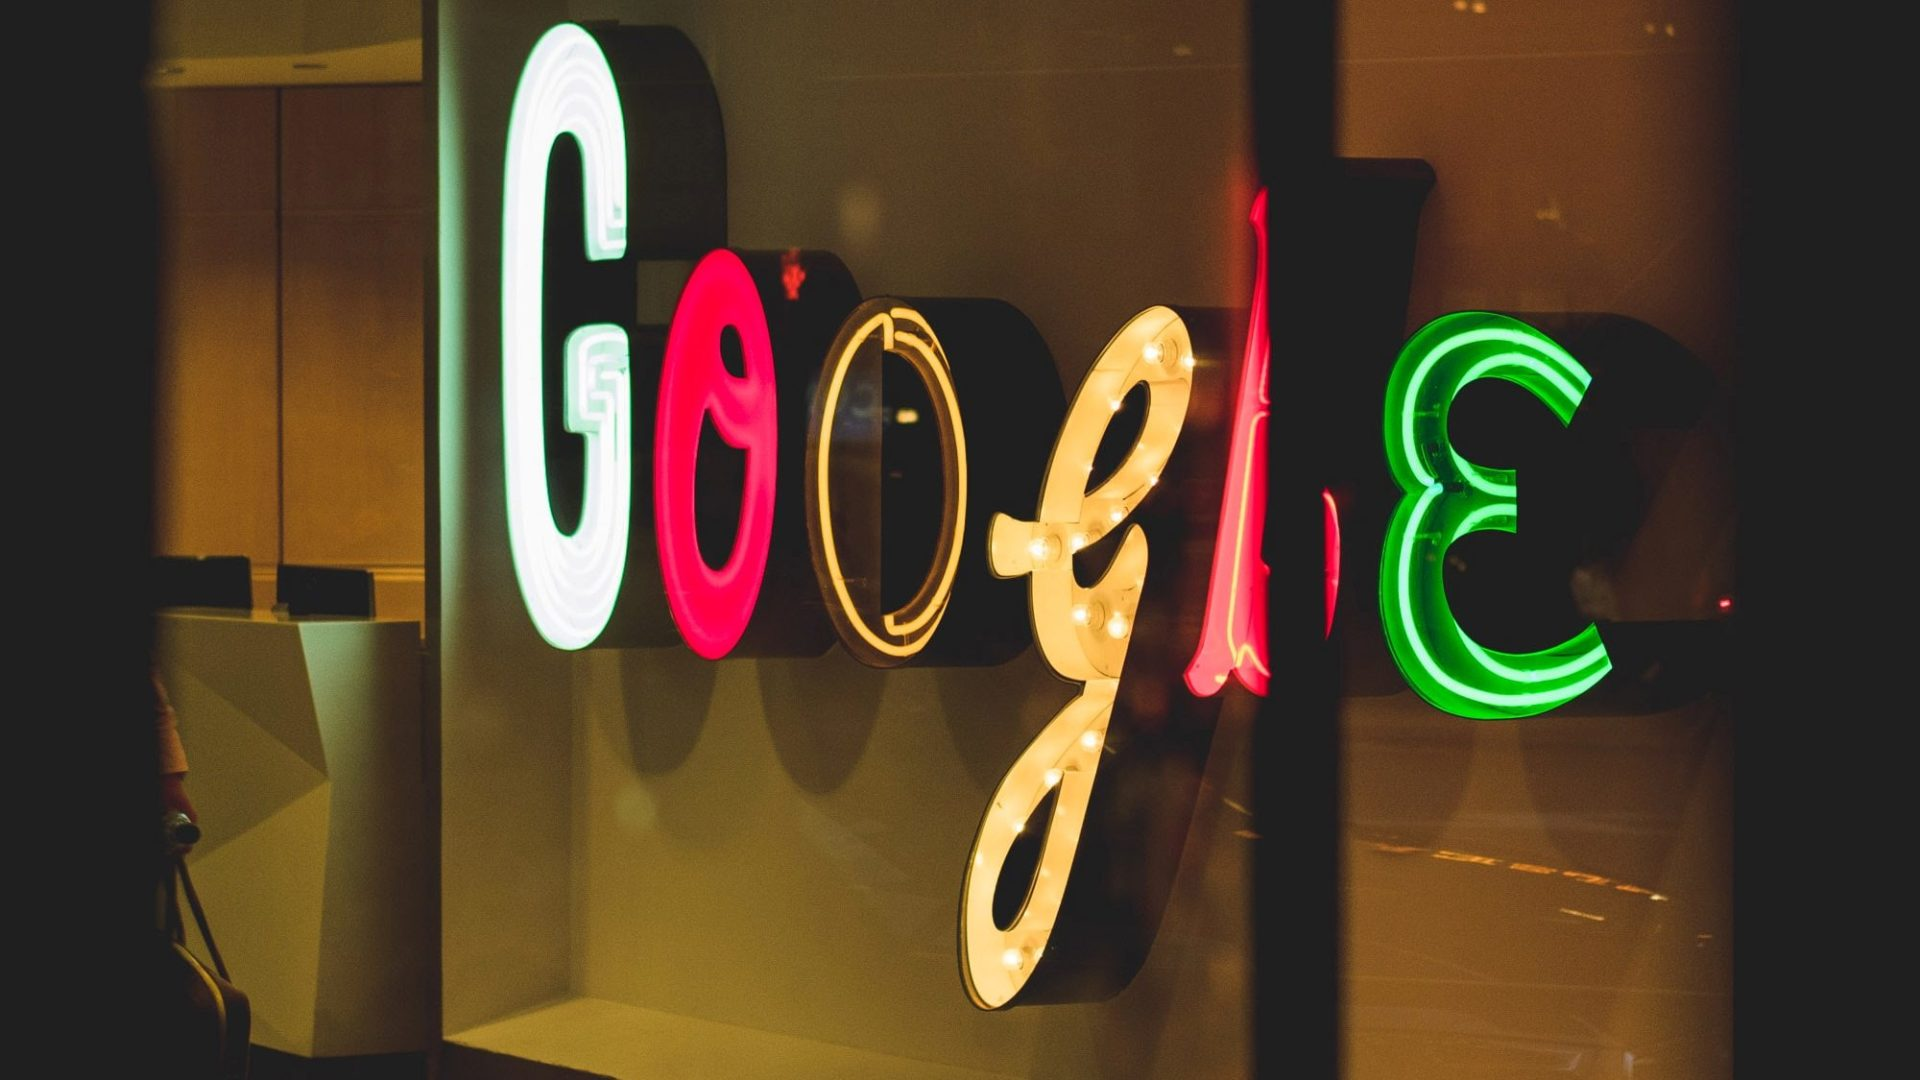 Illuminated Google sign in New York